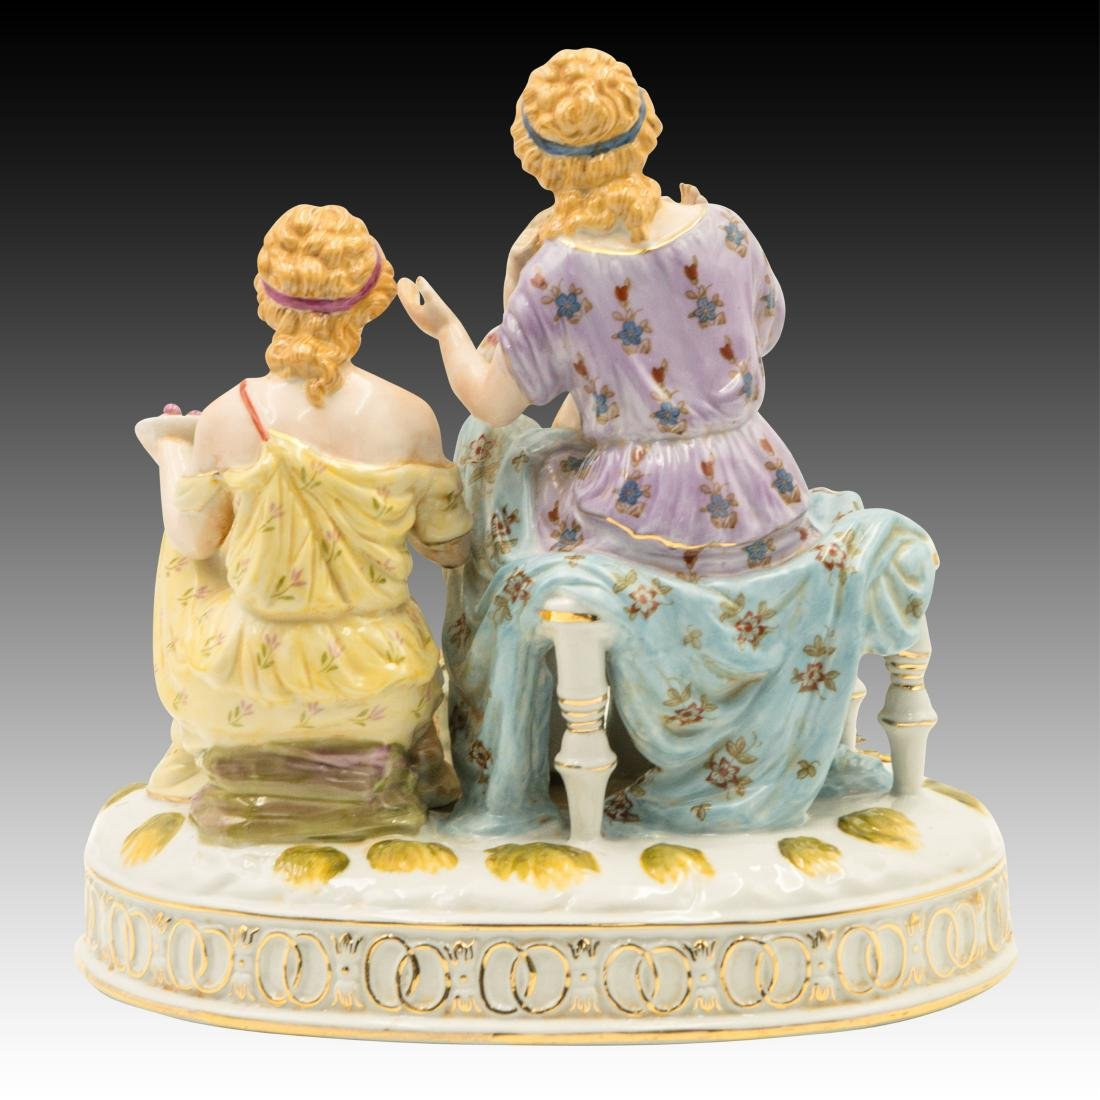 Two Women and a Cherub and Birds Figurine - 3